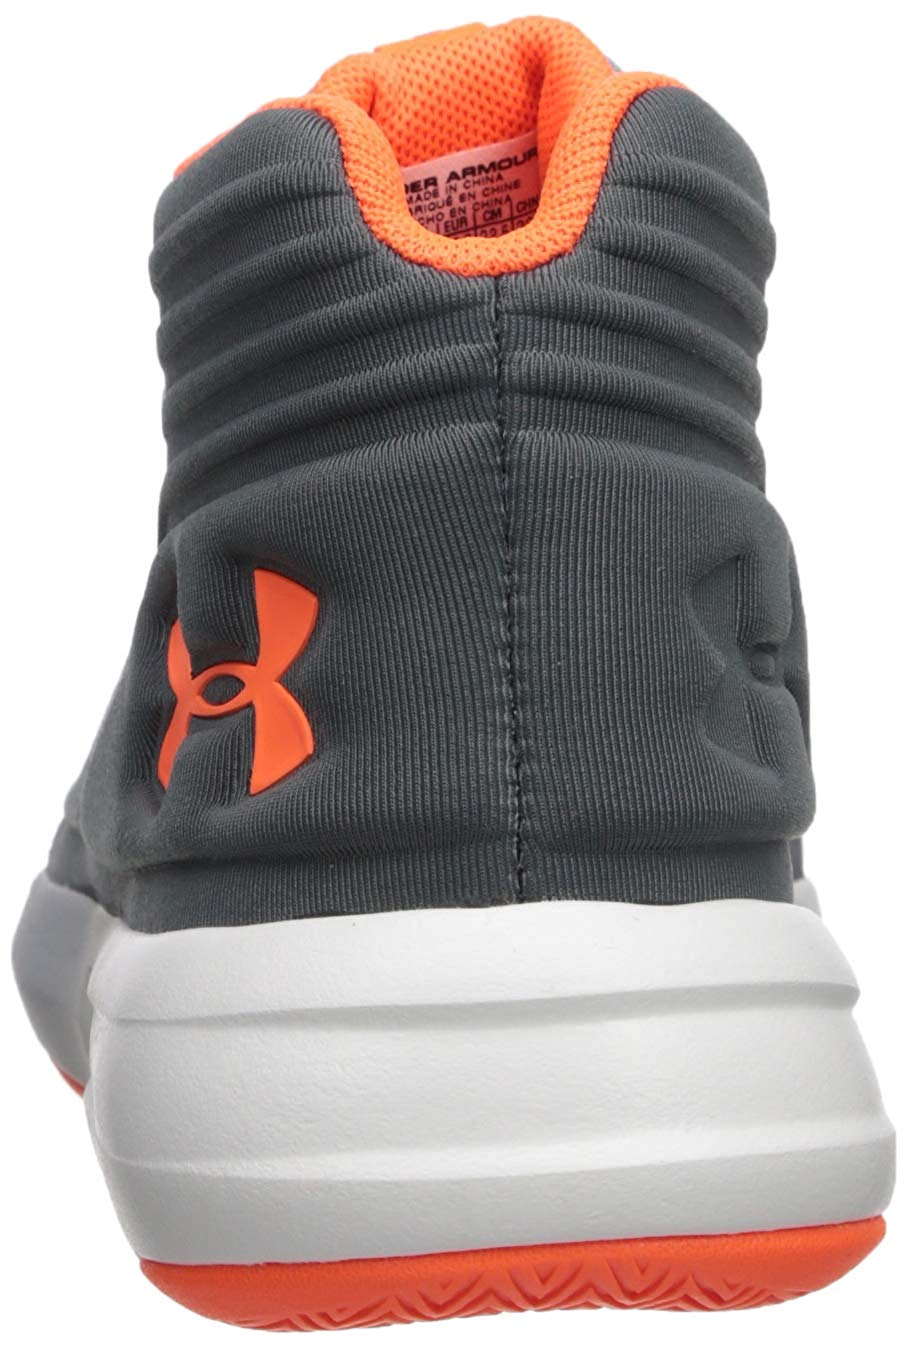 UNDER ARMOUR BGS TORCH MID BOY'S SNEAKER 3020428-102